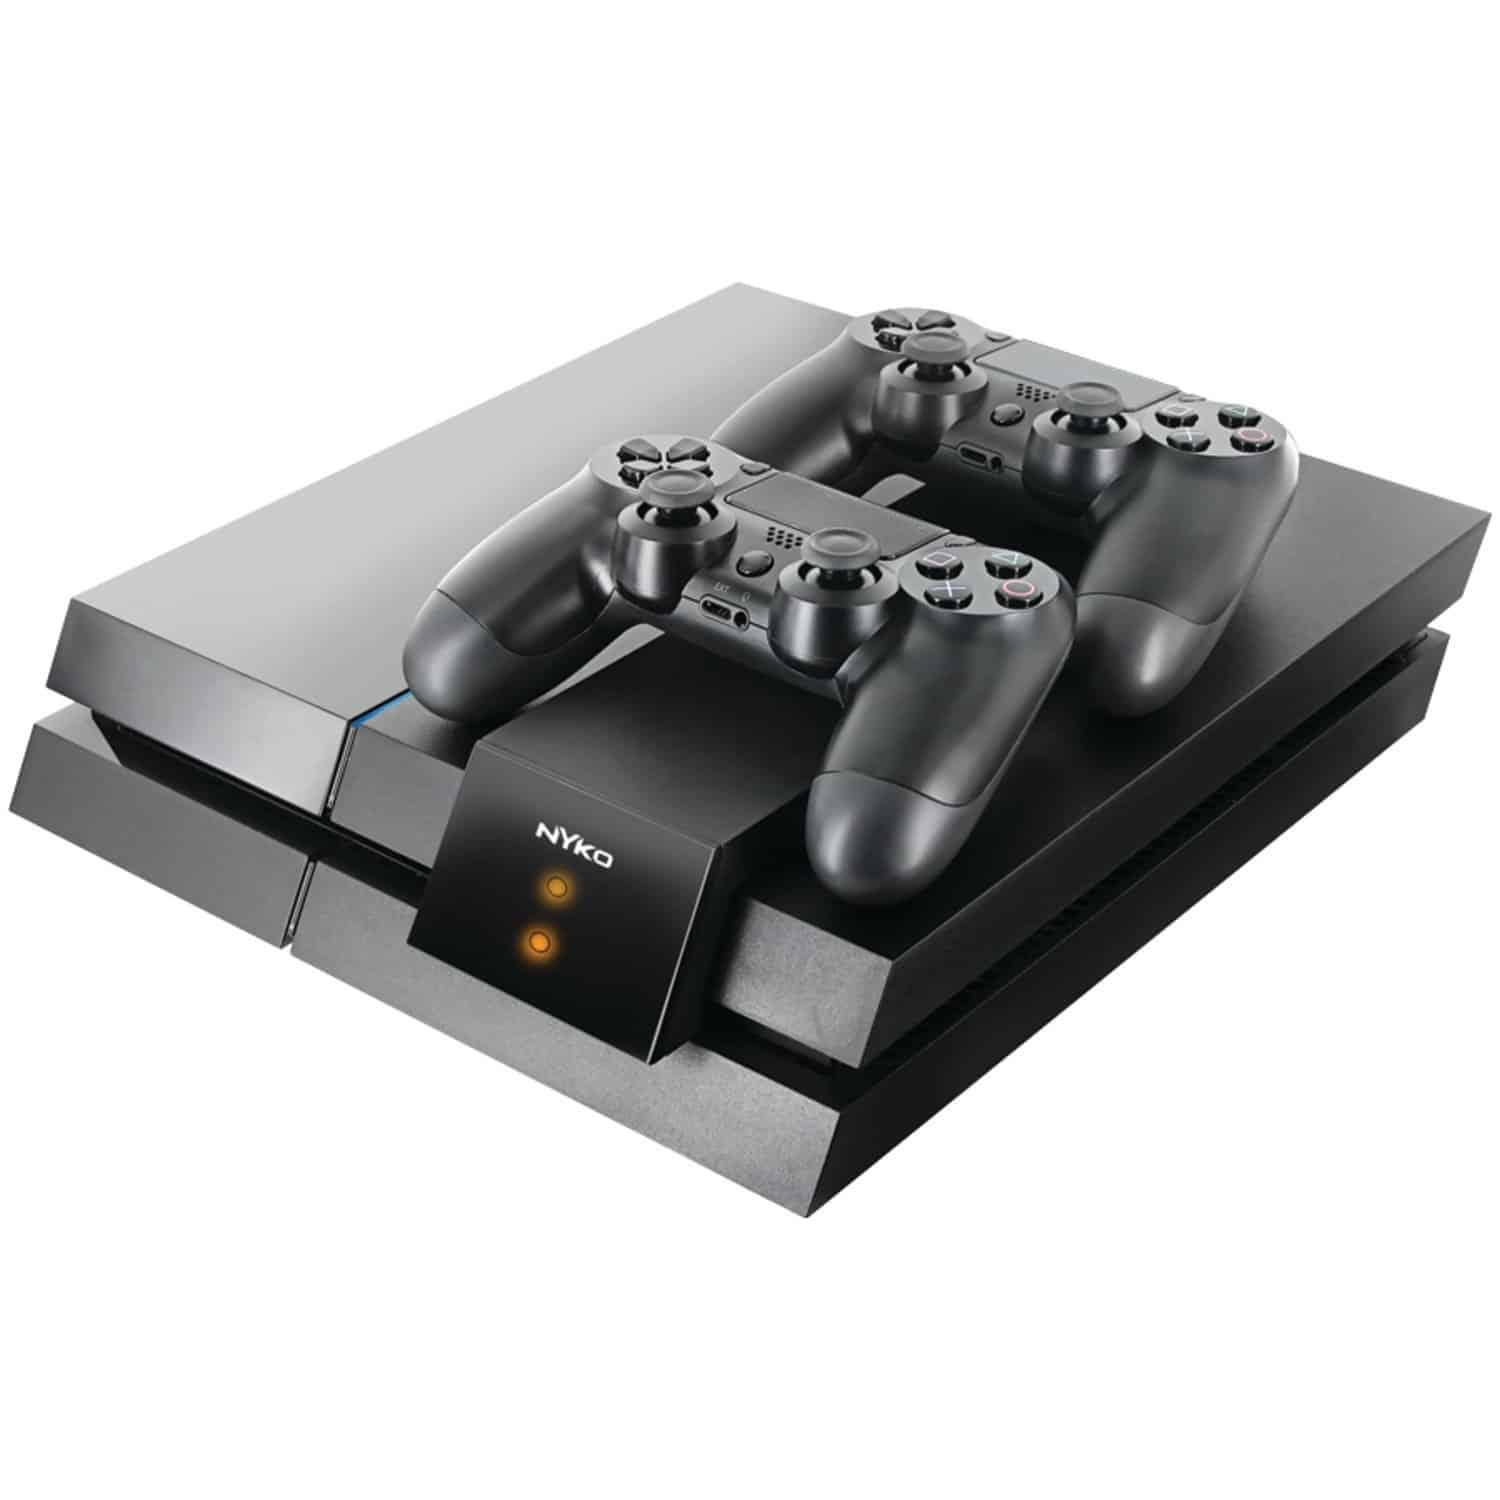 Nyko Modular PS4 charge station